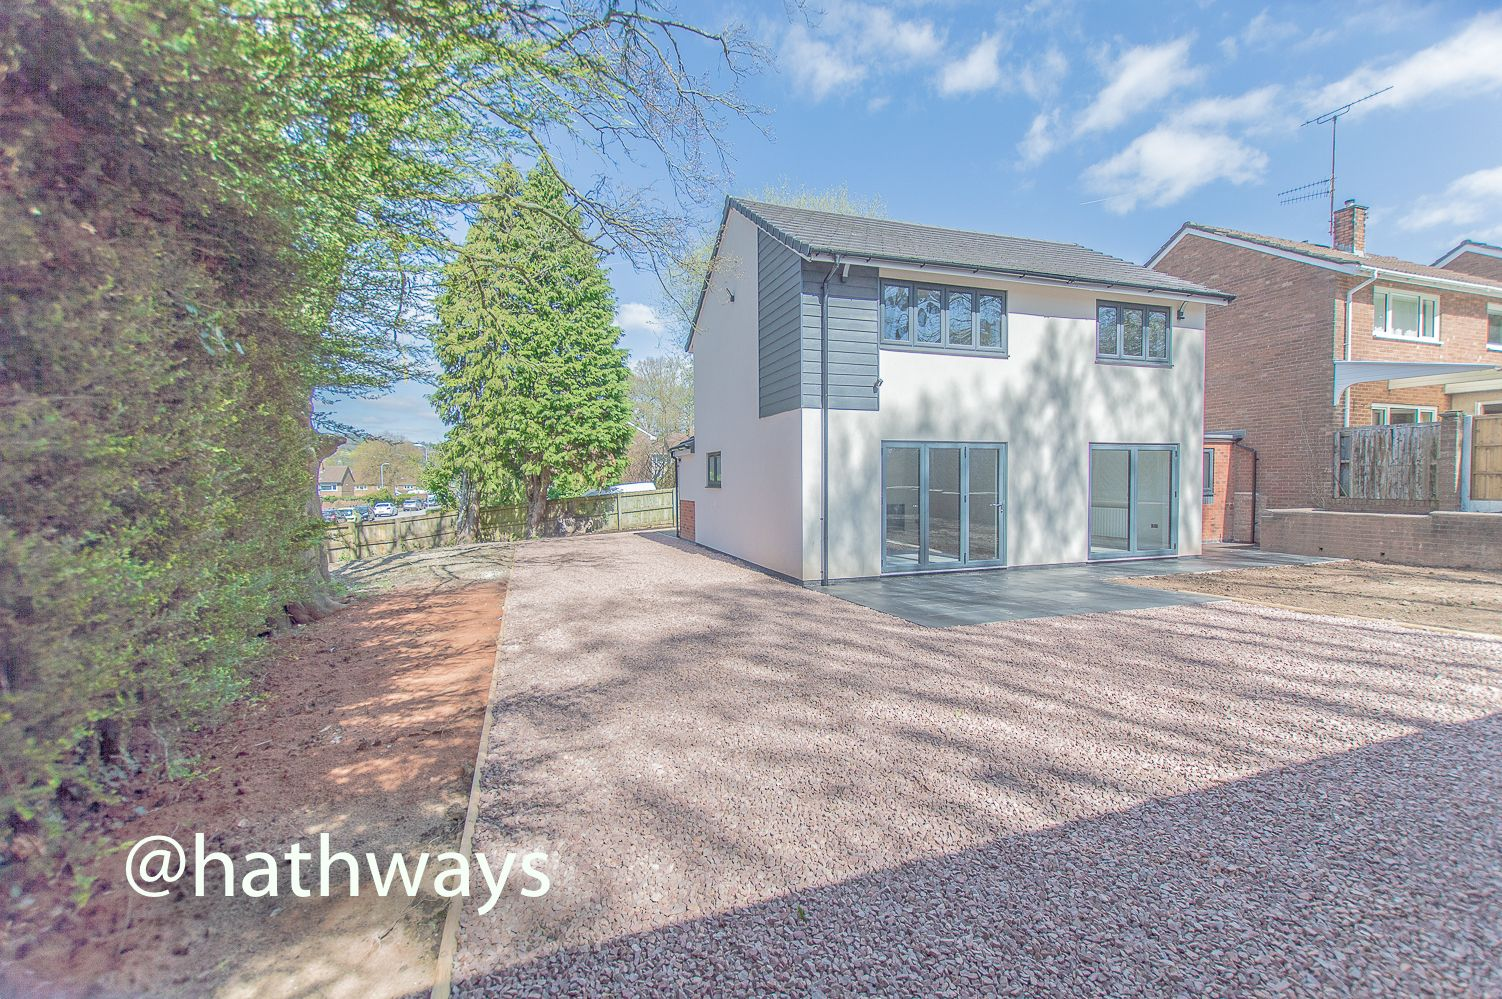 3 bed house for sale in Garw Wood Drive  - Property Image 2